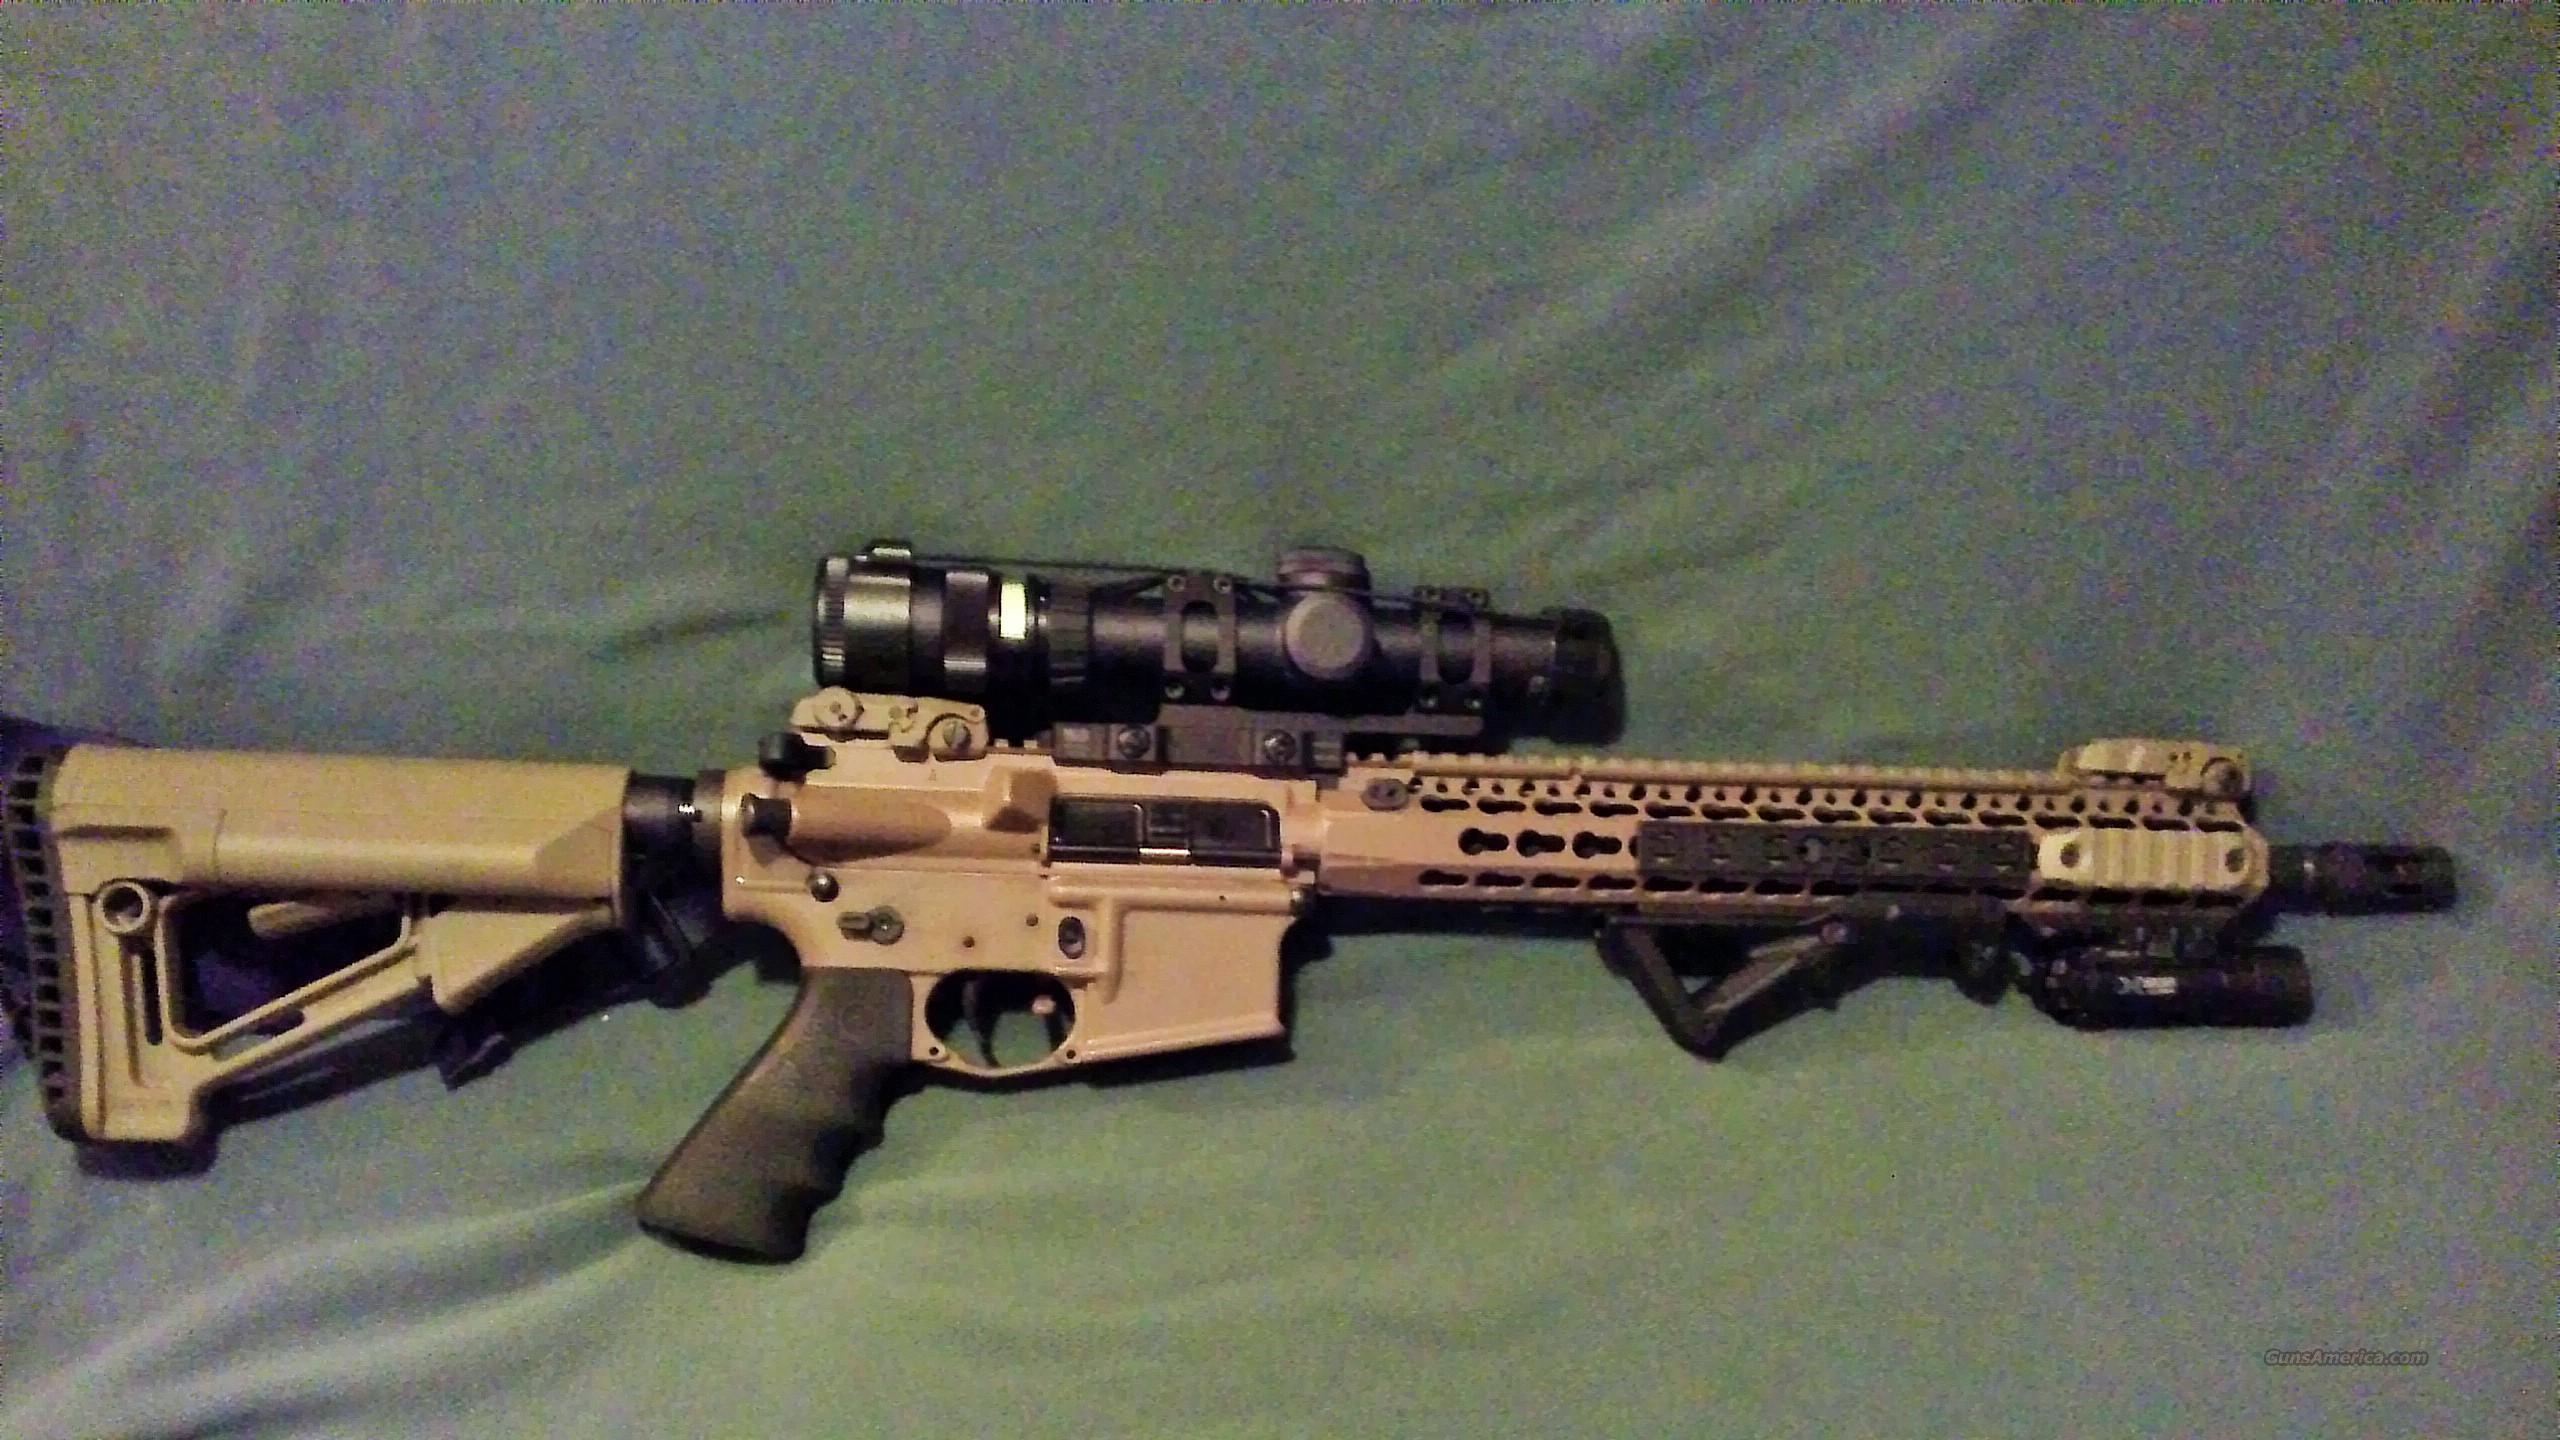 ROCK RIVER CUSTOM TACTICAL RIFLE for sale